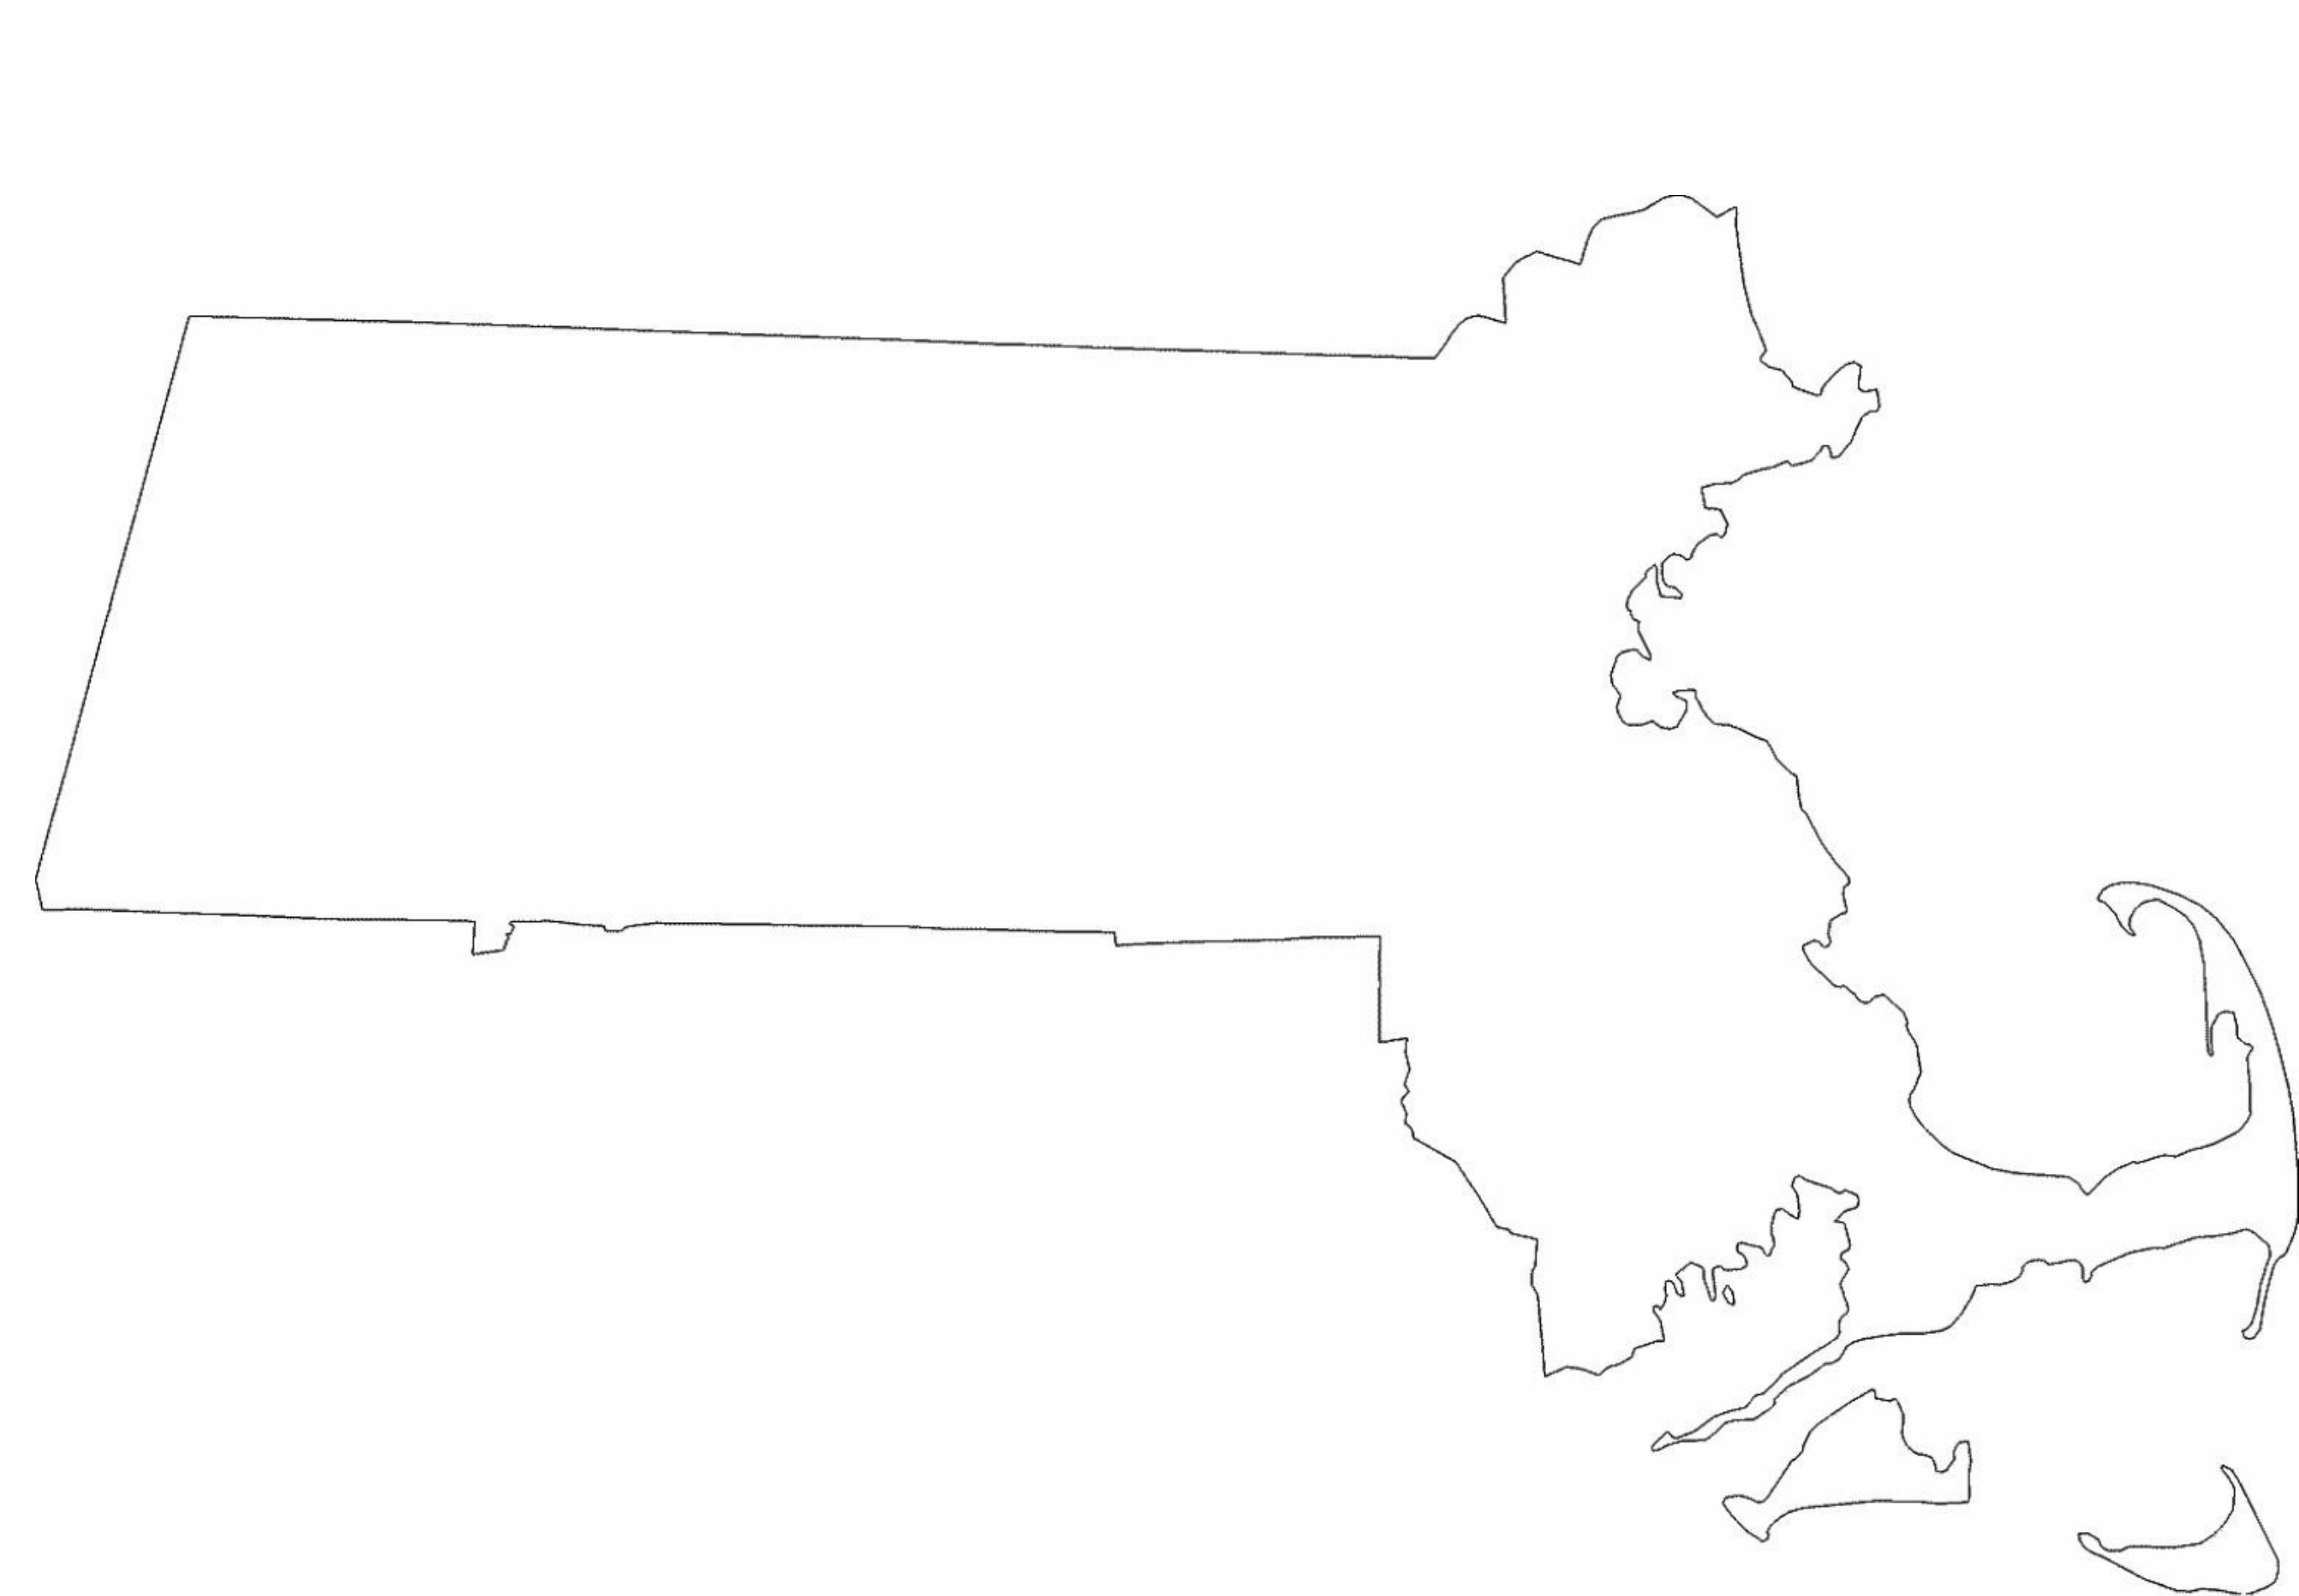 massachusetts state outline map free download